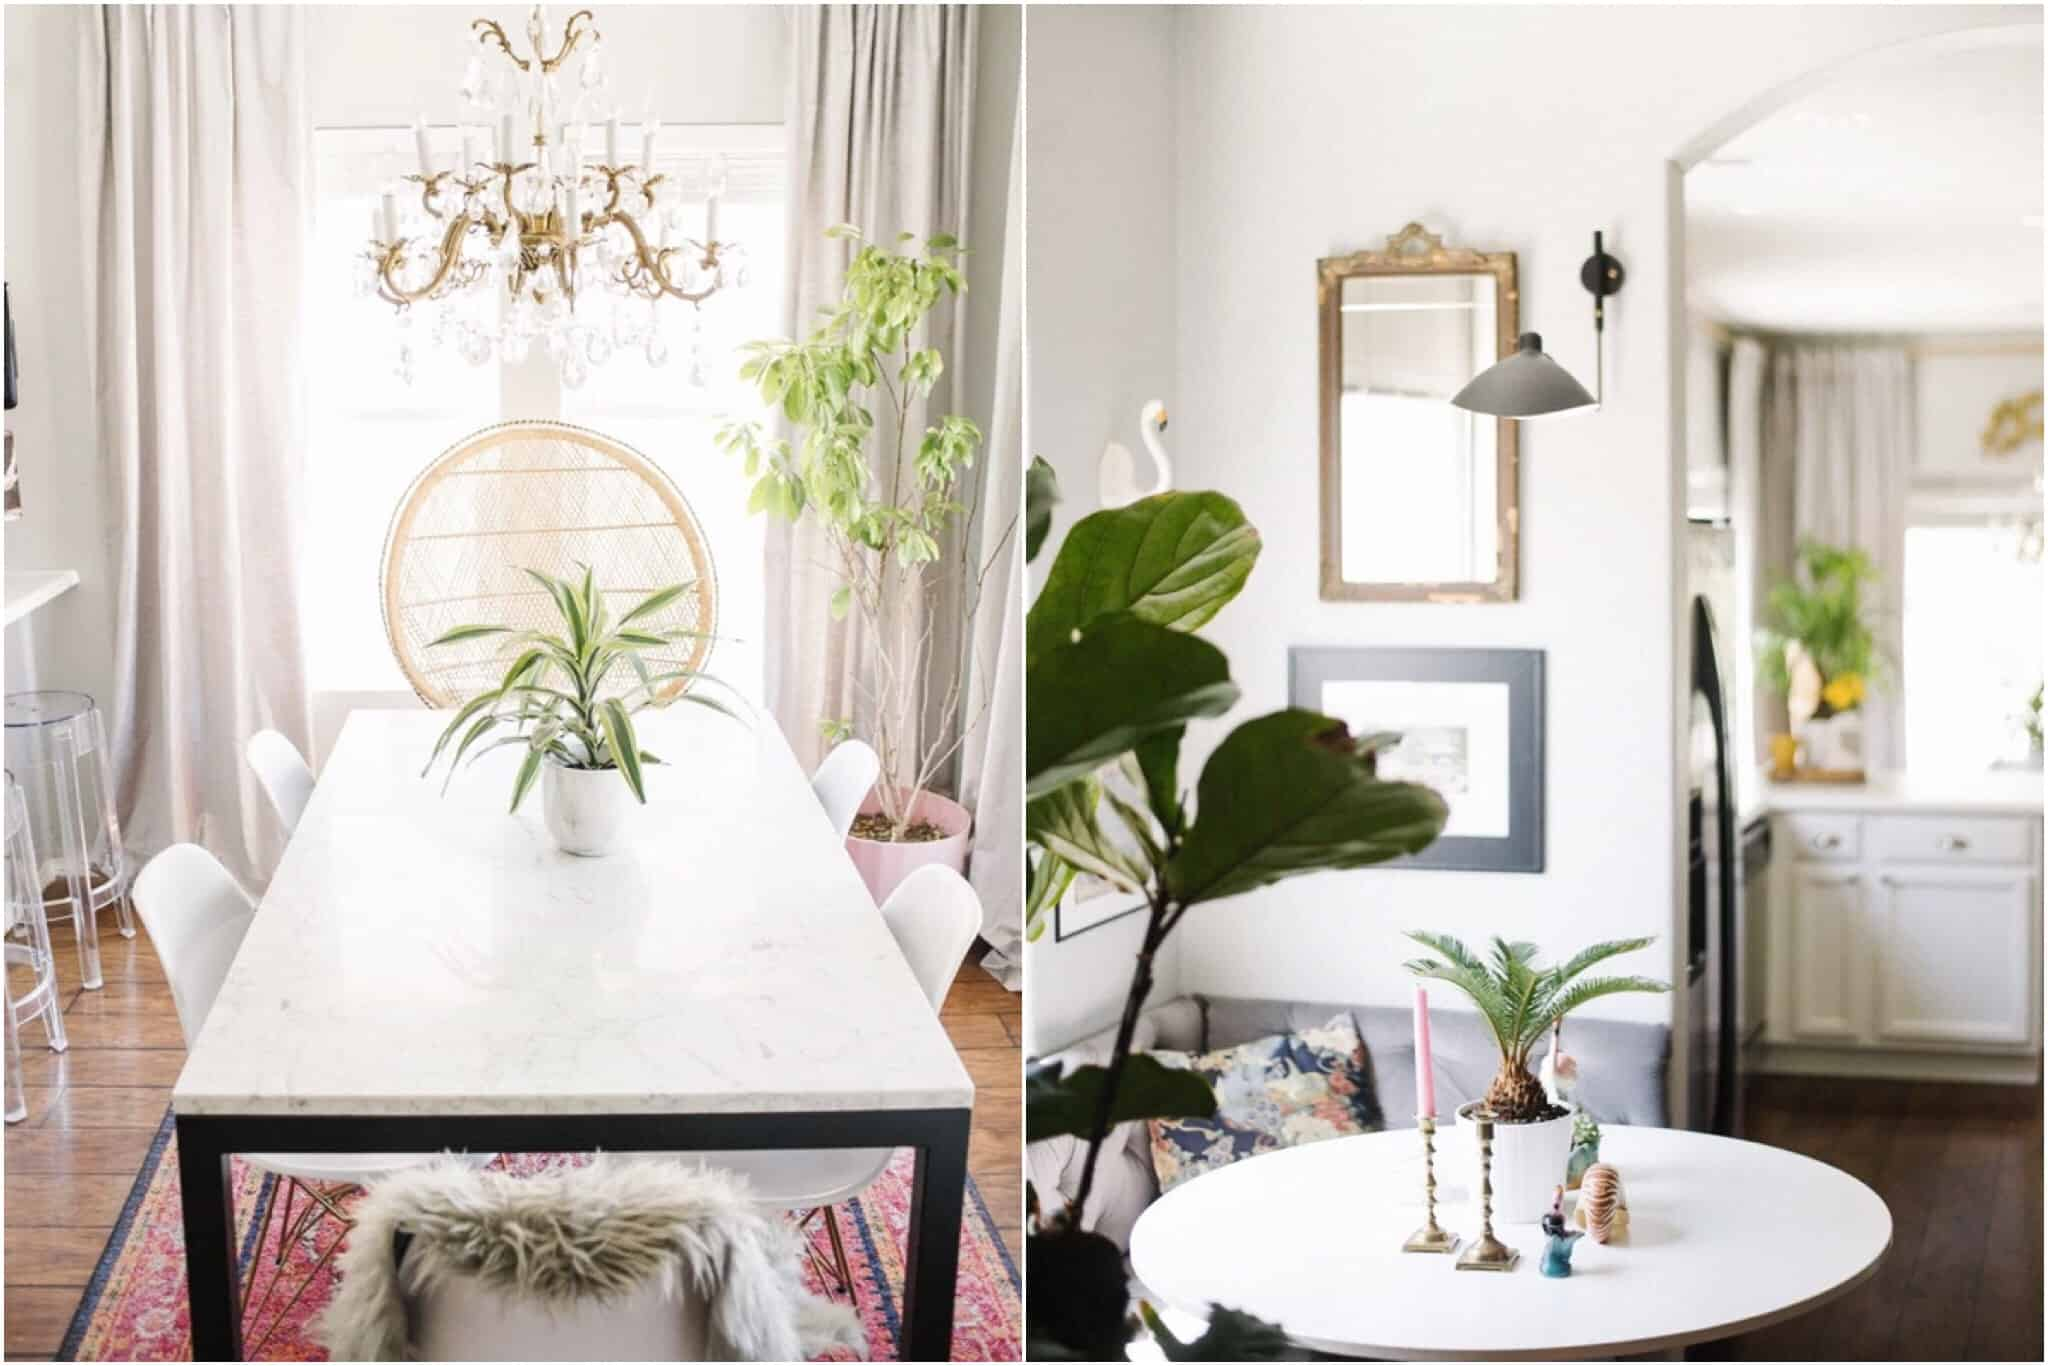 HOM: The Coloful Home of Designer Nichol Naranjo